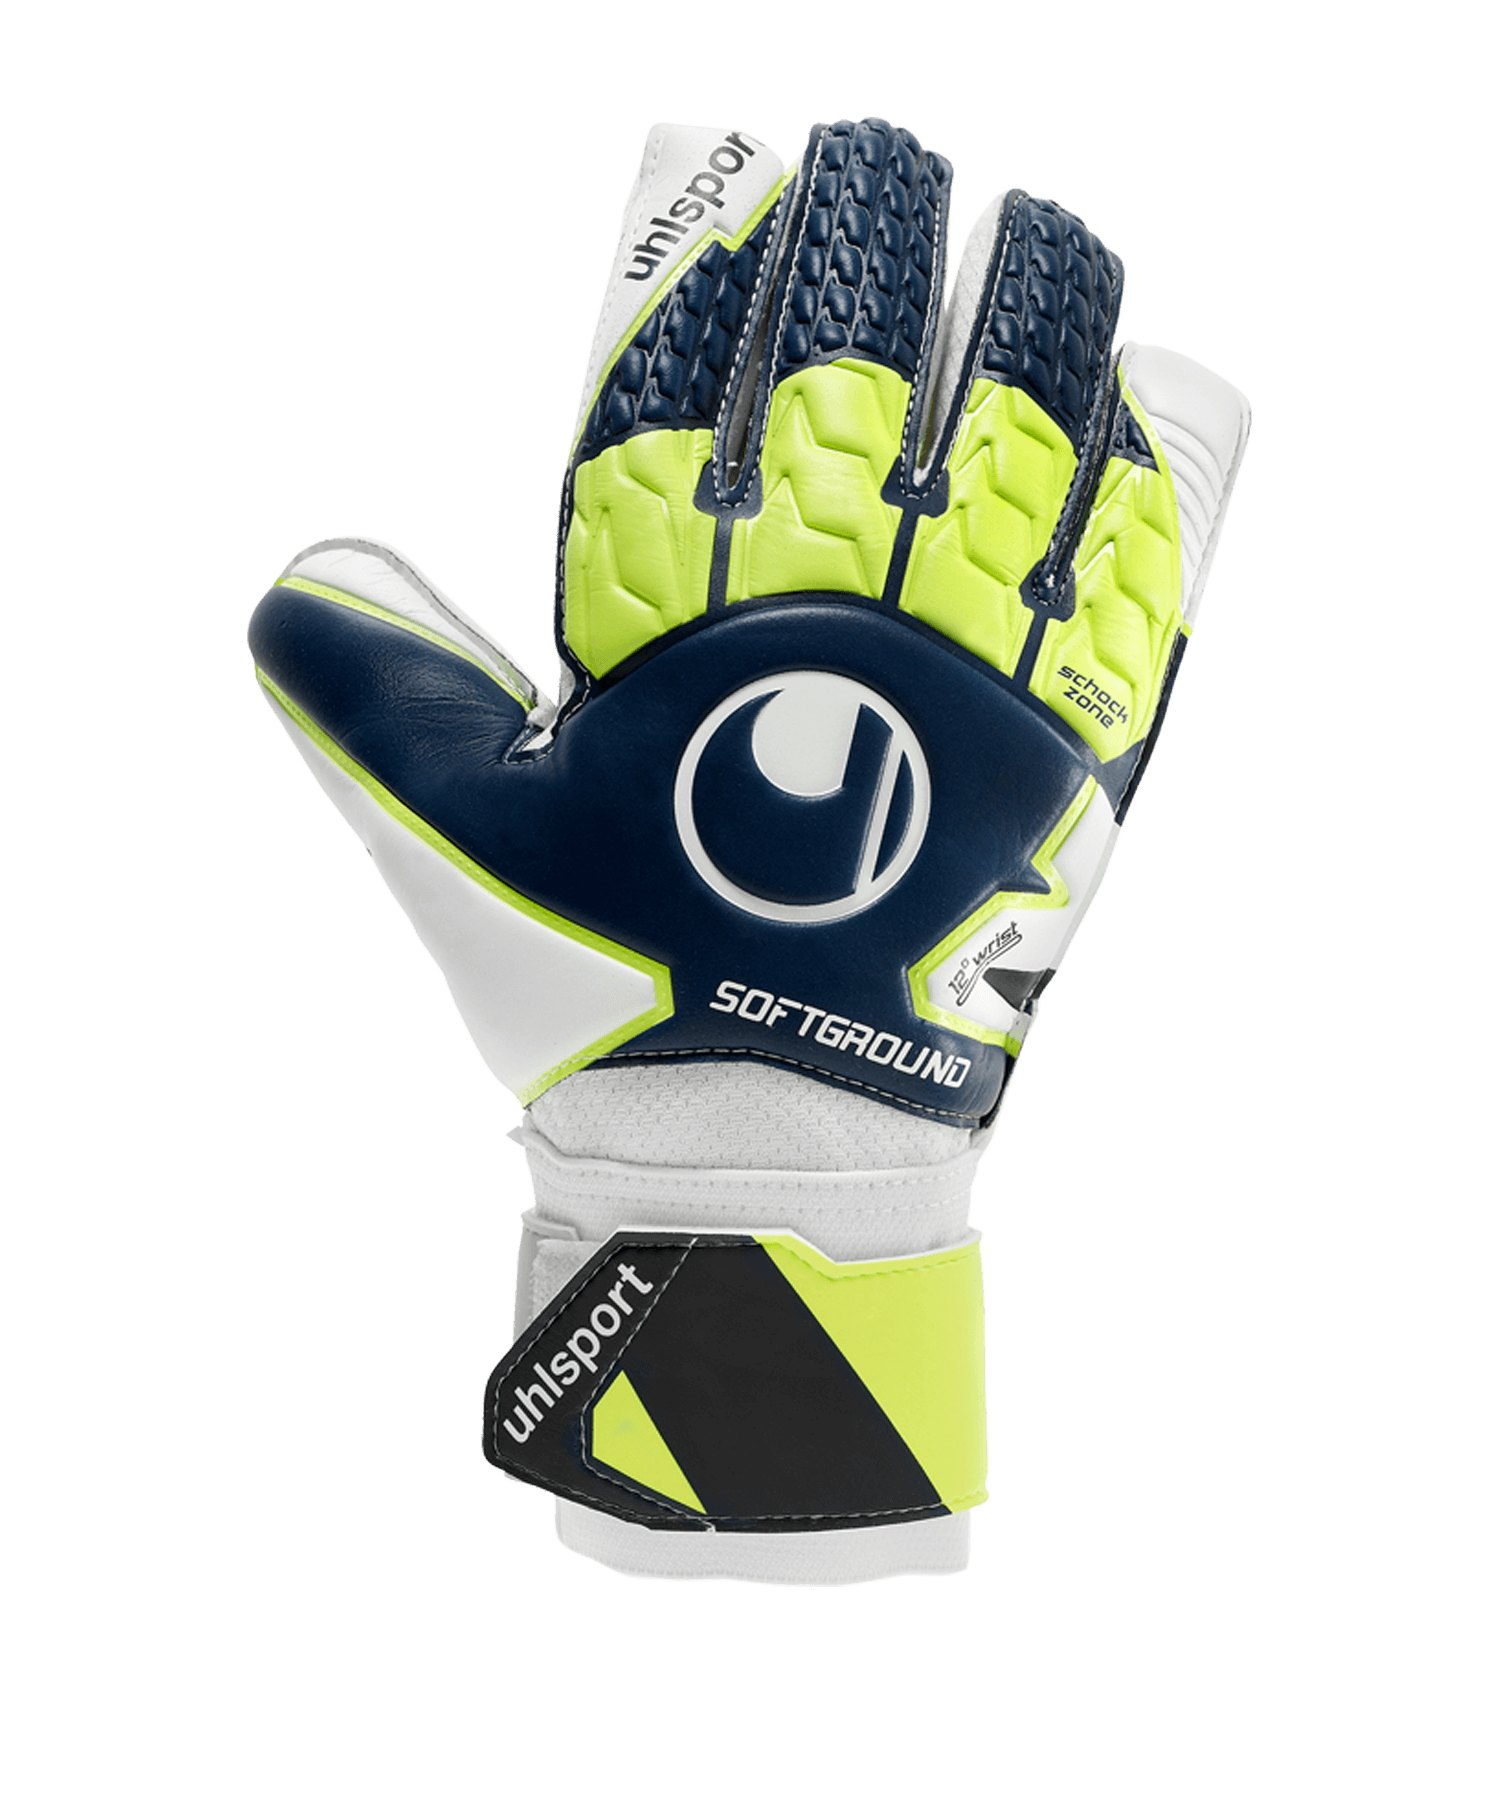 Uhlsport Soft Advanced Torwarthandschuh Blau F01 - blau